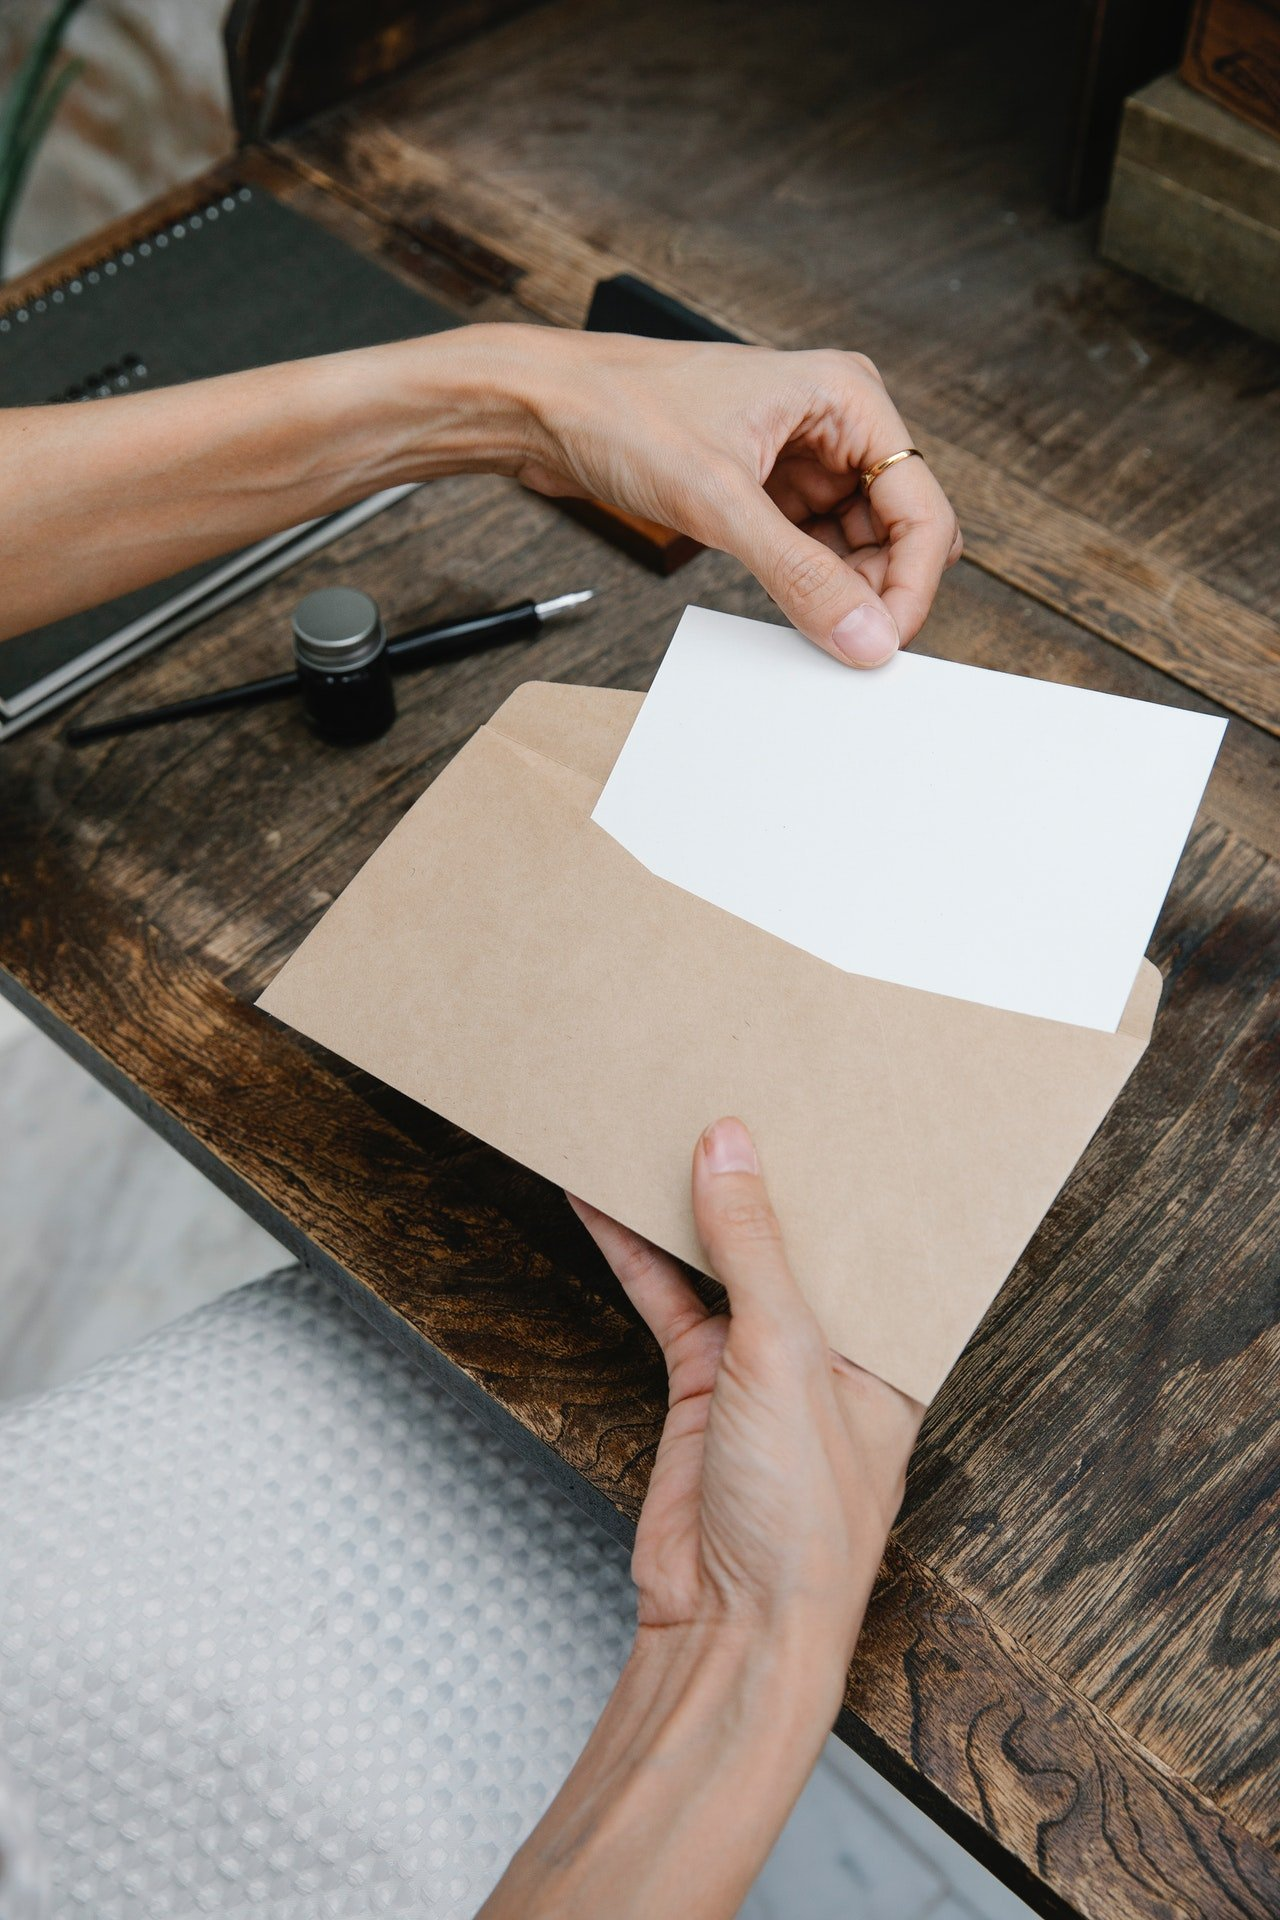 Francesca discovered a letter on the coffee table. | Source: Pexels